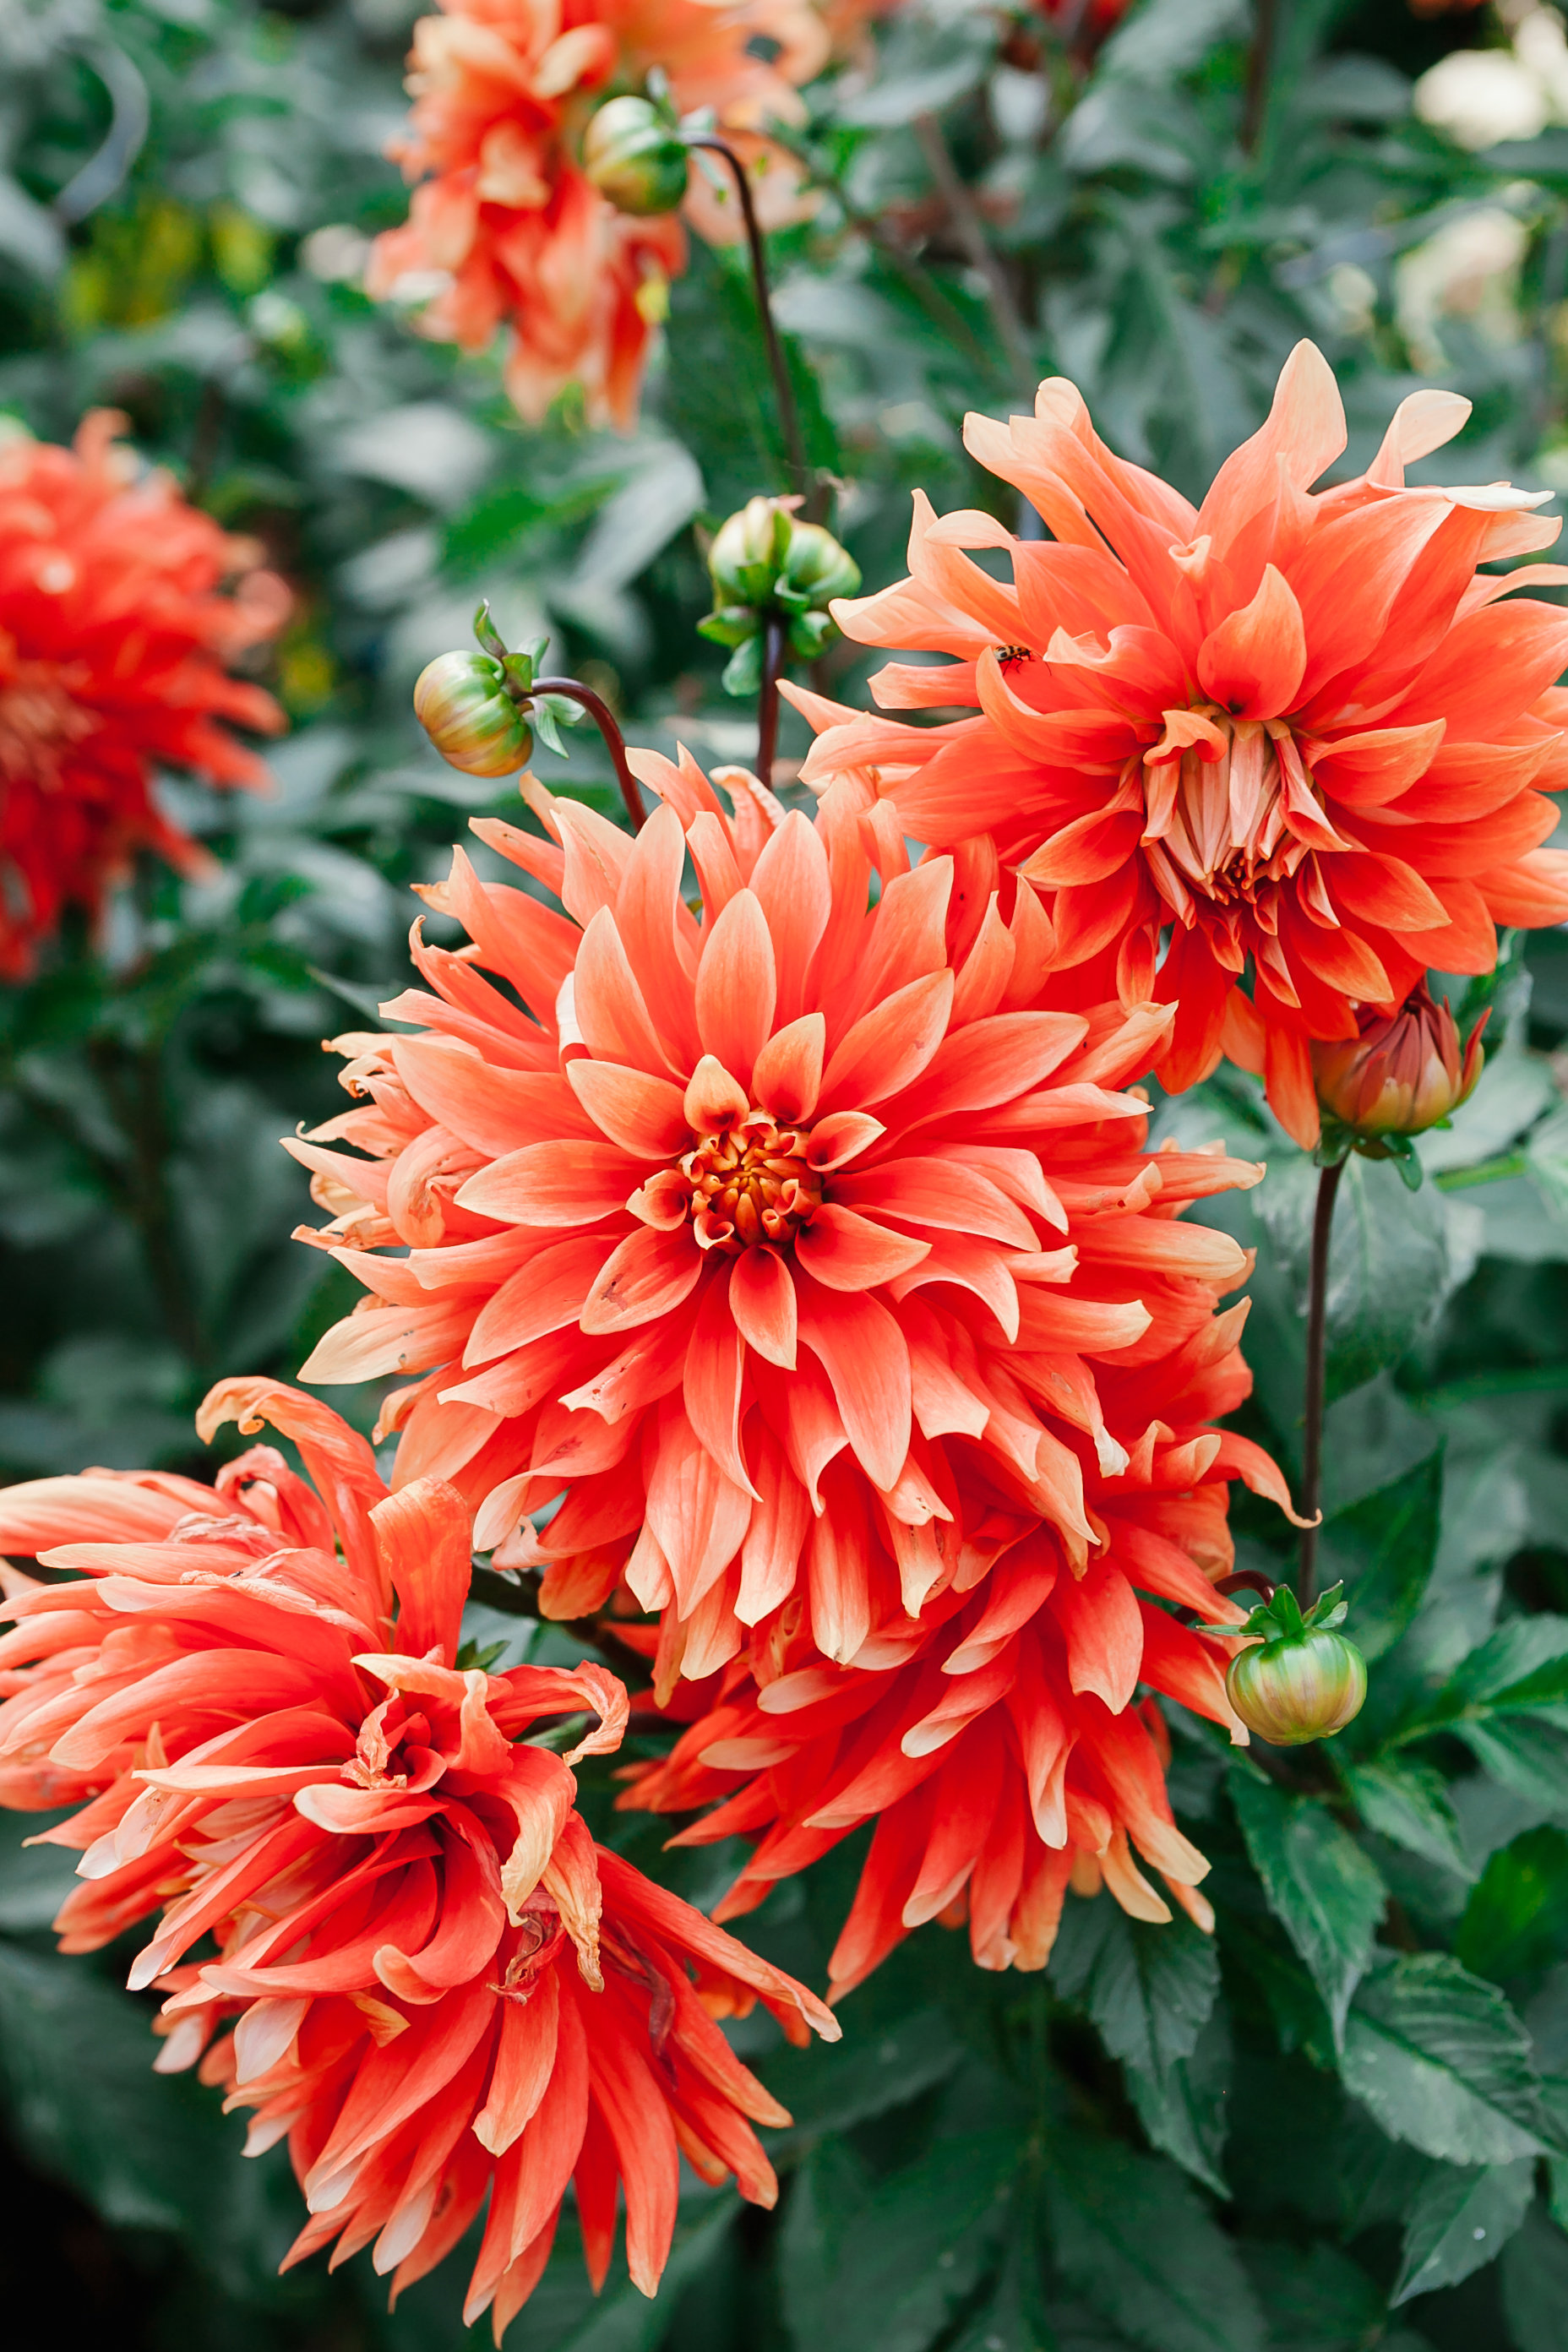 Dahlia garden collections mcbg inc 2018 fort bragg california tammie gilchrist photography tammiegilchrist izmirmasajfo Image collections